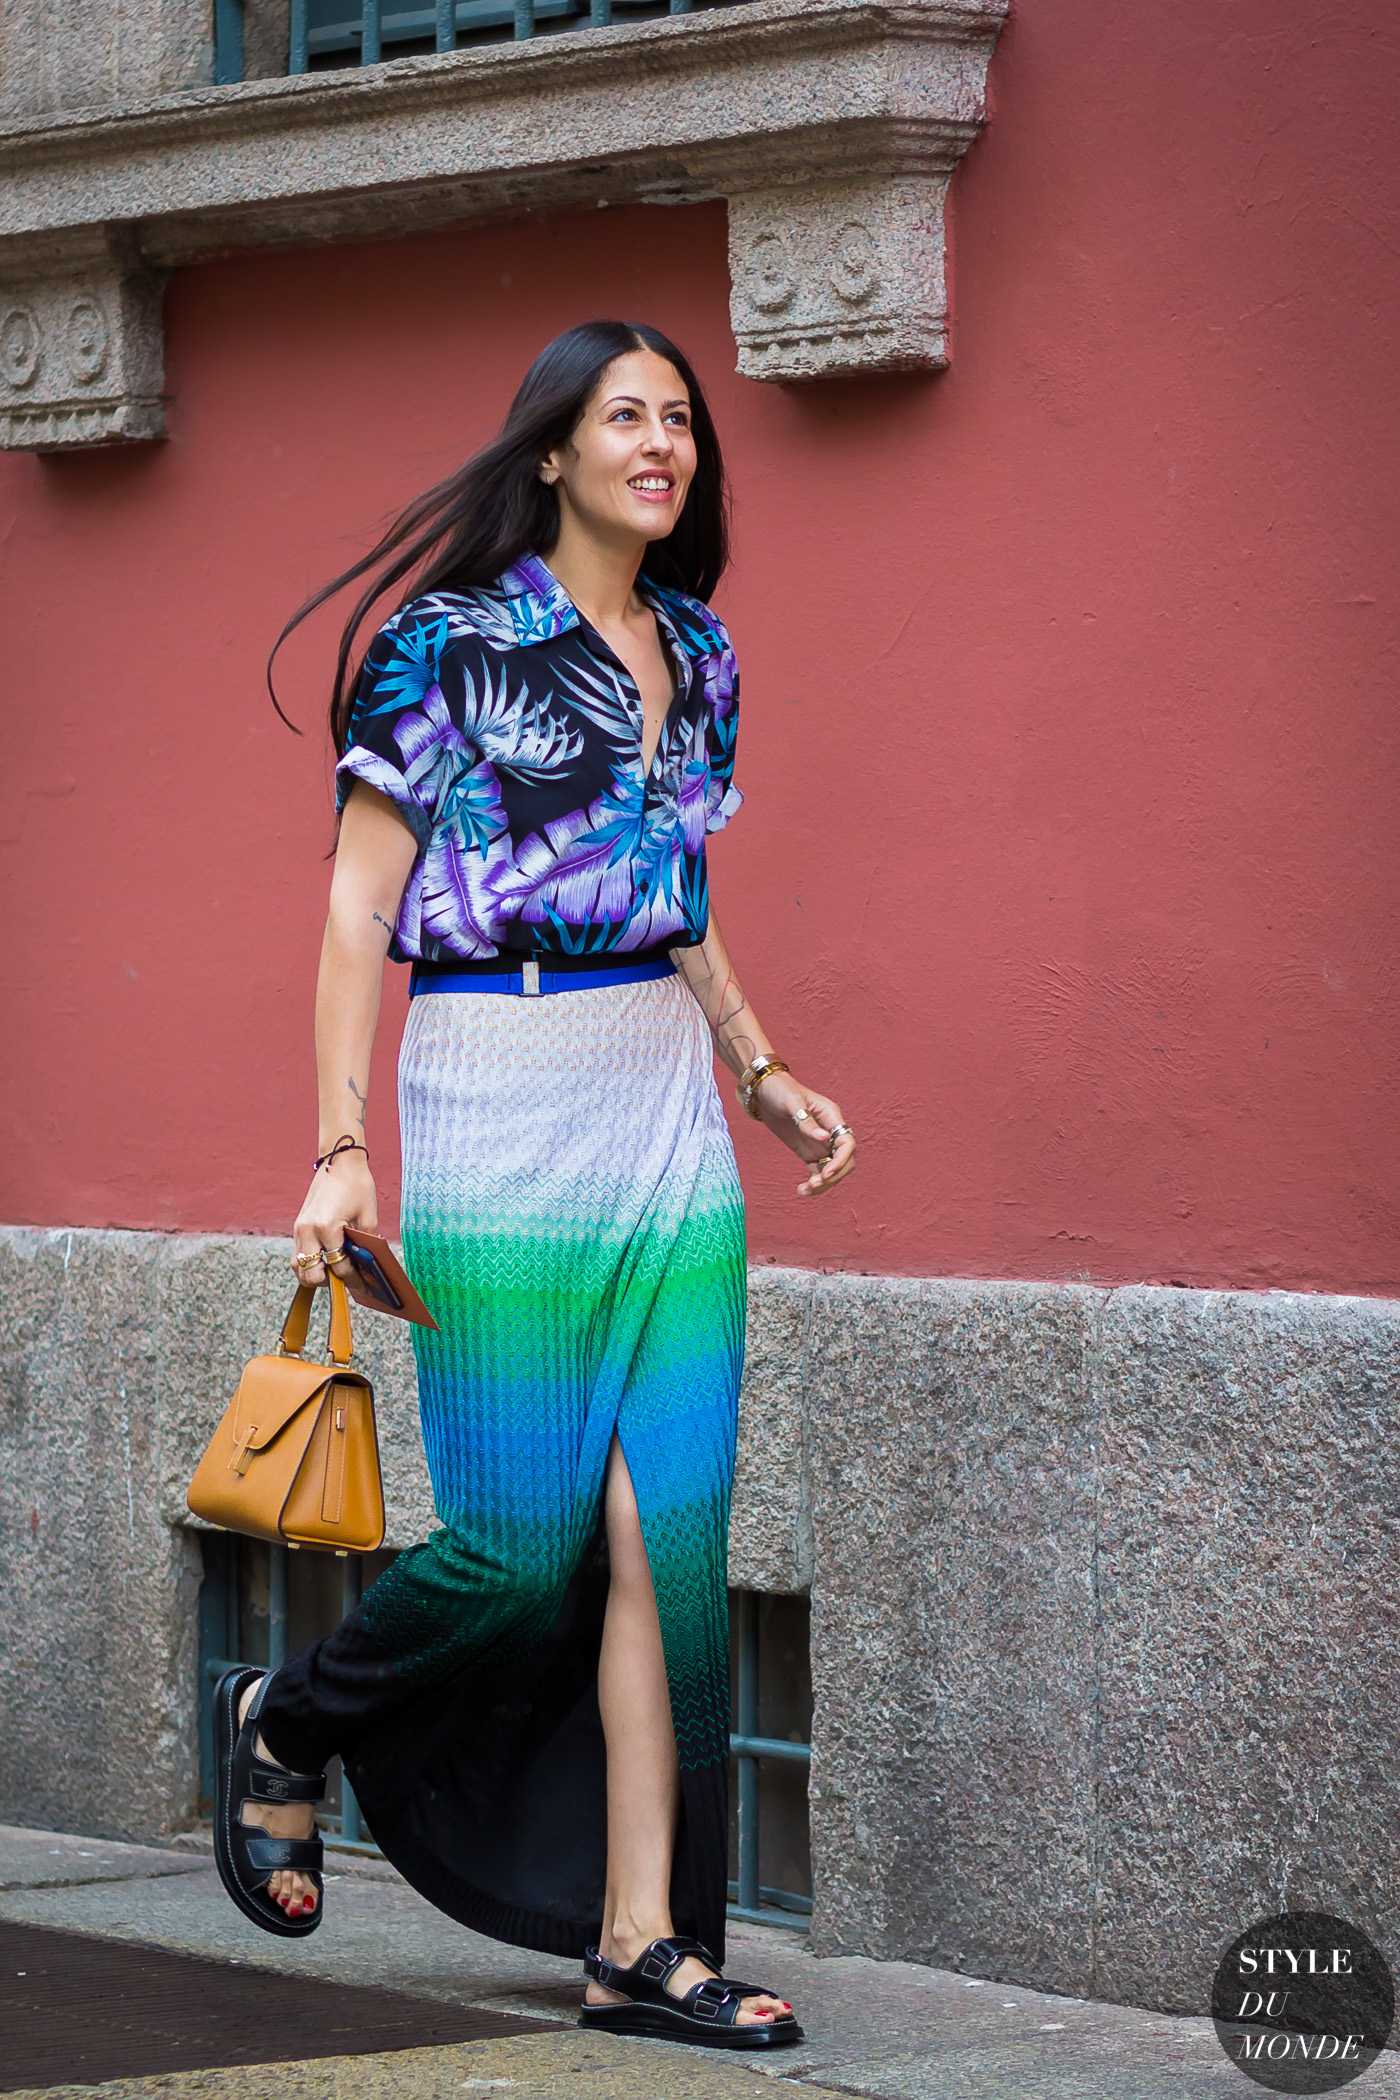 Gilda Ambrosio Street Style Street Fashion Streetsnaps by STYLEDUMONDE Street Style Fashion Photography